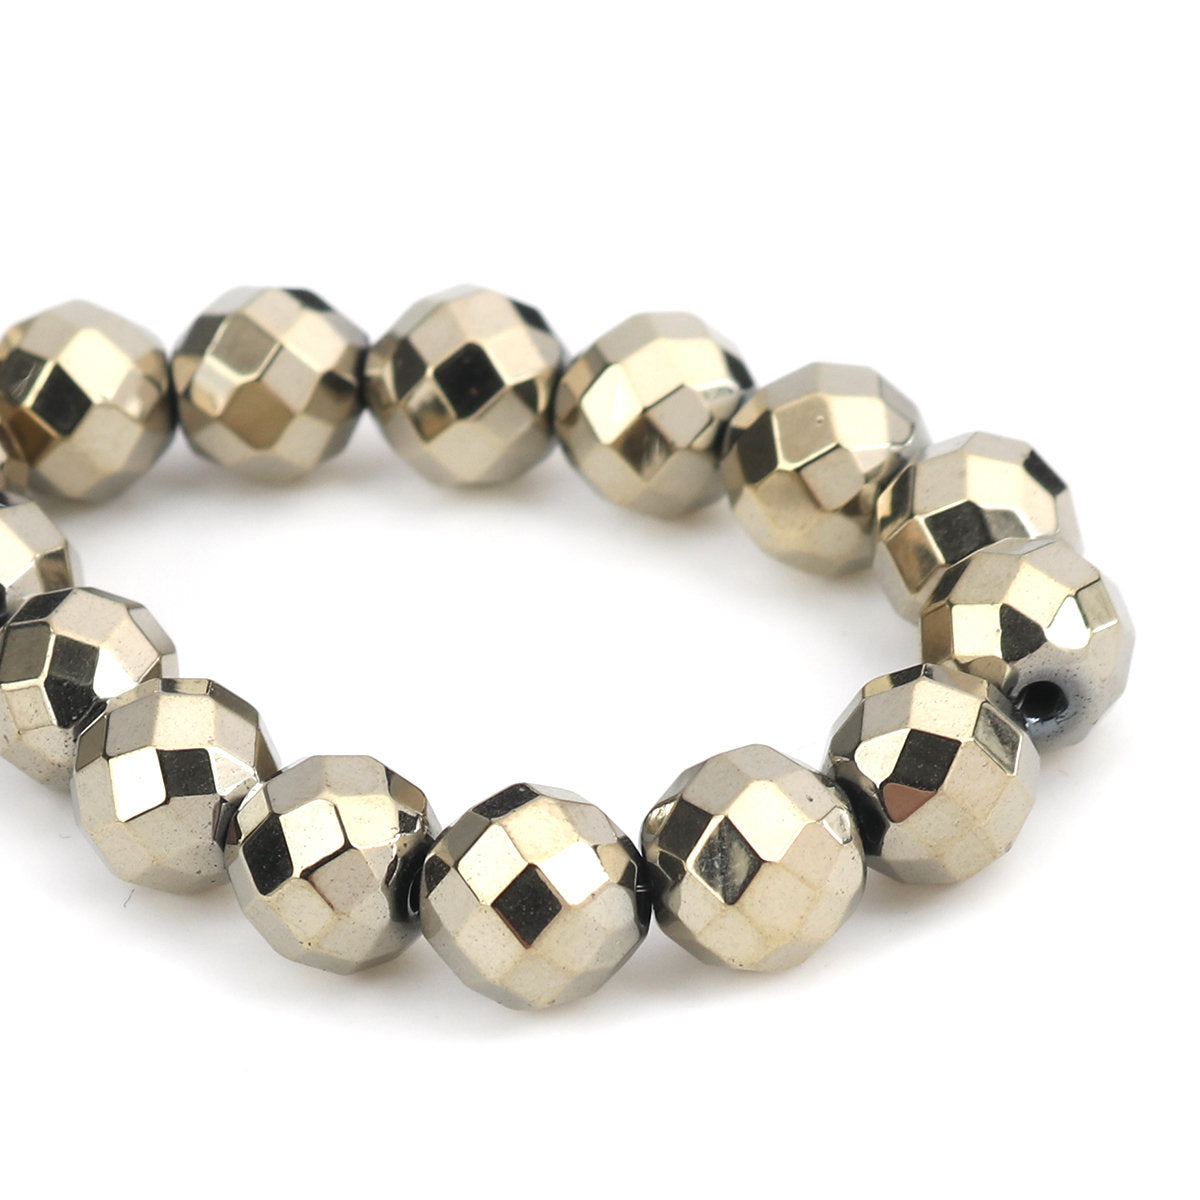 Spacer Beads (One Strand) - 10mm - Hematite - Faceted